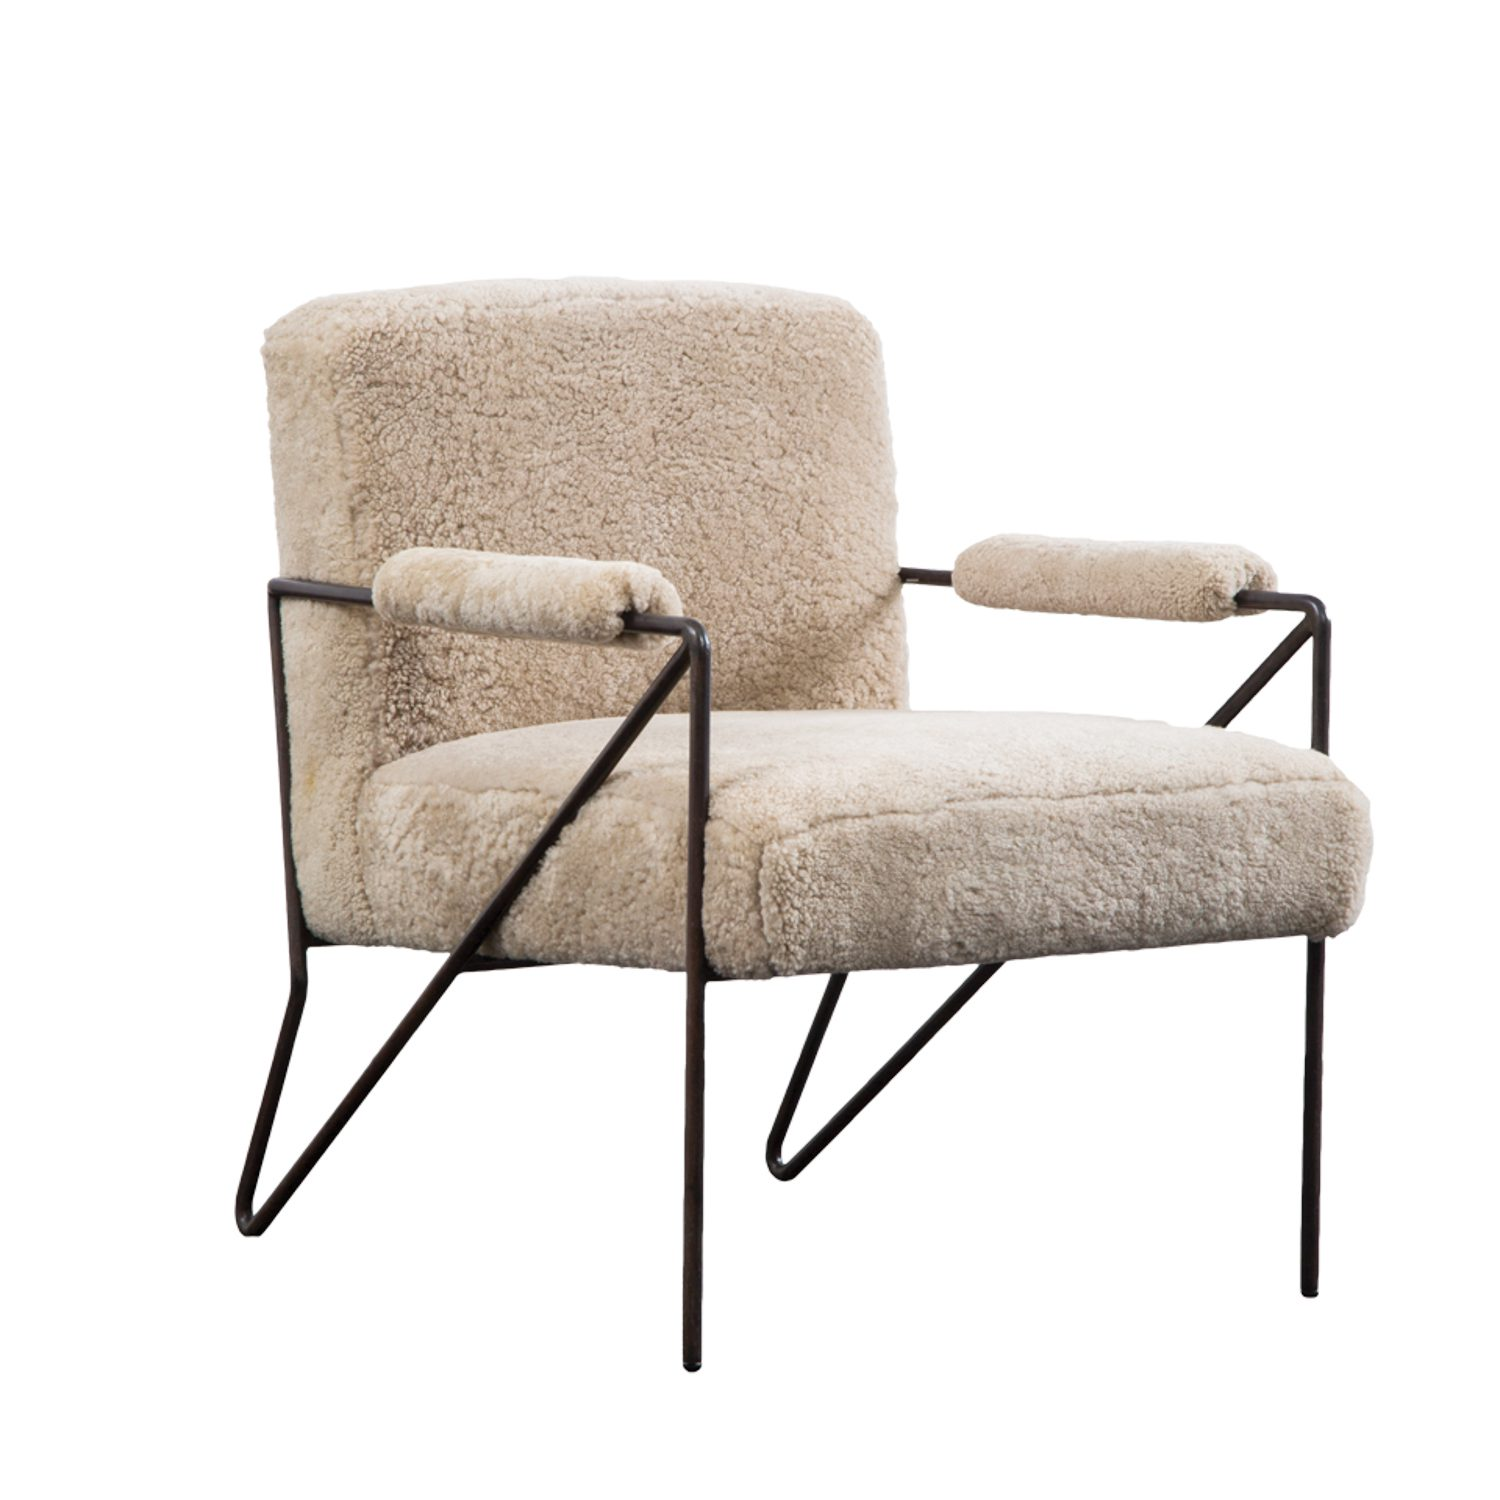 Wearstler's new Emmett indoor/outdoor lounge chair, with matte-black stainless-steel hairpin frame, is available in multiple fabrics and leathers.